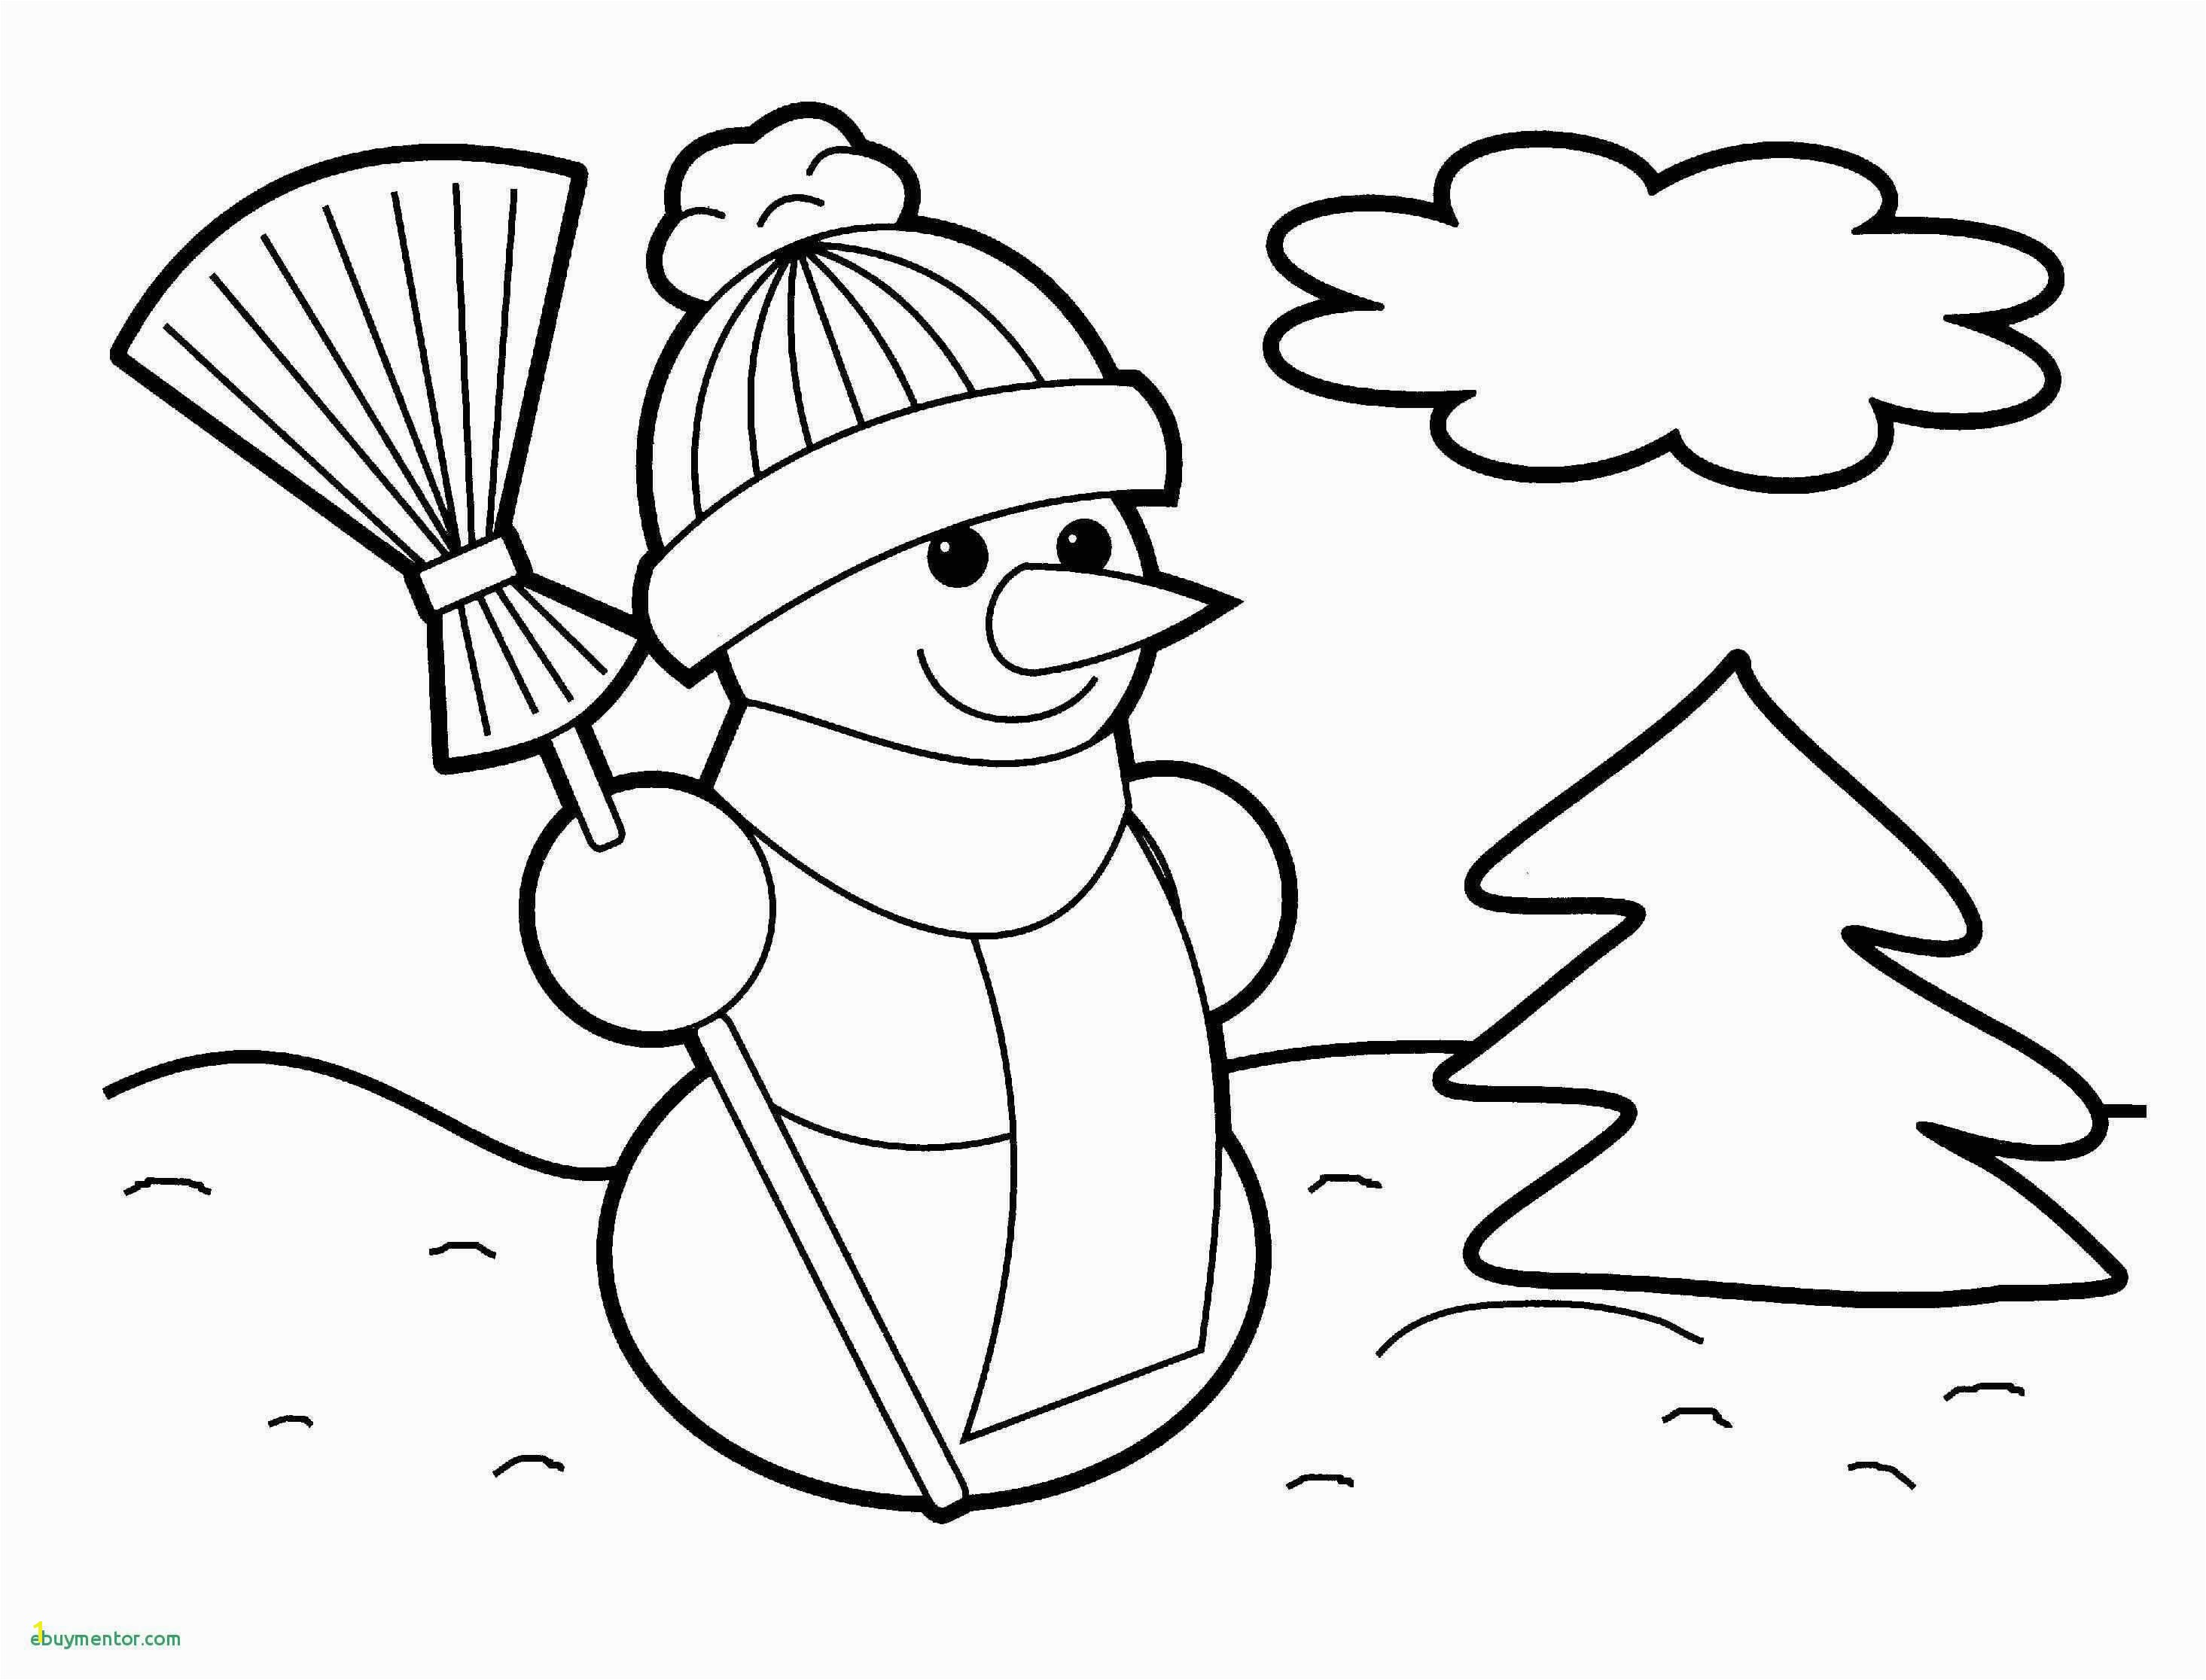 Coloring Pages Christmas Tree ornaments Christmas Tree Coloring Page with ornaments Cool Od Dog Coloring